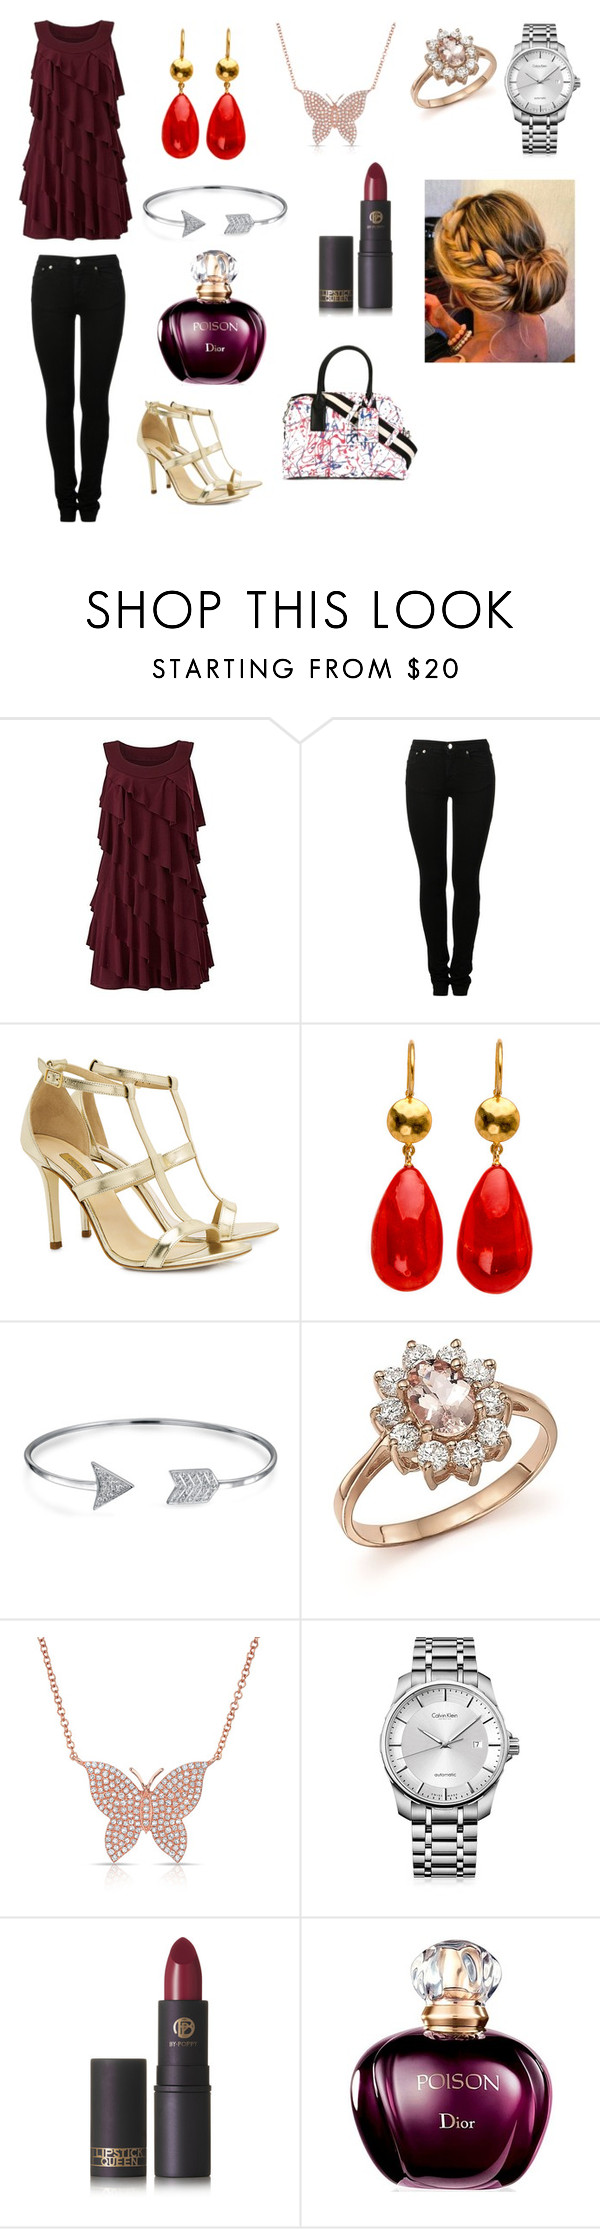 """""""King of Pain"""" by madhura-datar on Polyvore featuring MM6 Maison Margiela, Dee Keller, Bling Jewelry, Bloomingdale's, Anne Sisteron, Calvin Klein, Lipstick Queen and Marc Jacobs"""